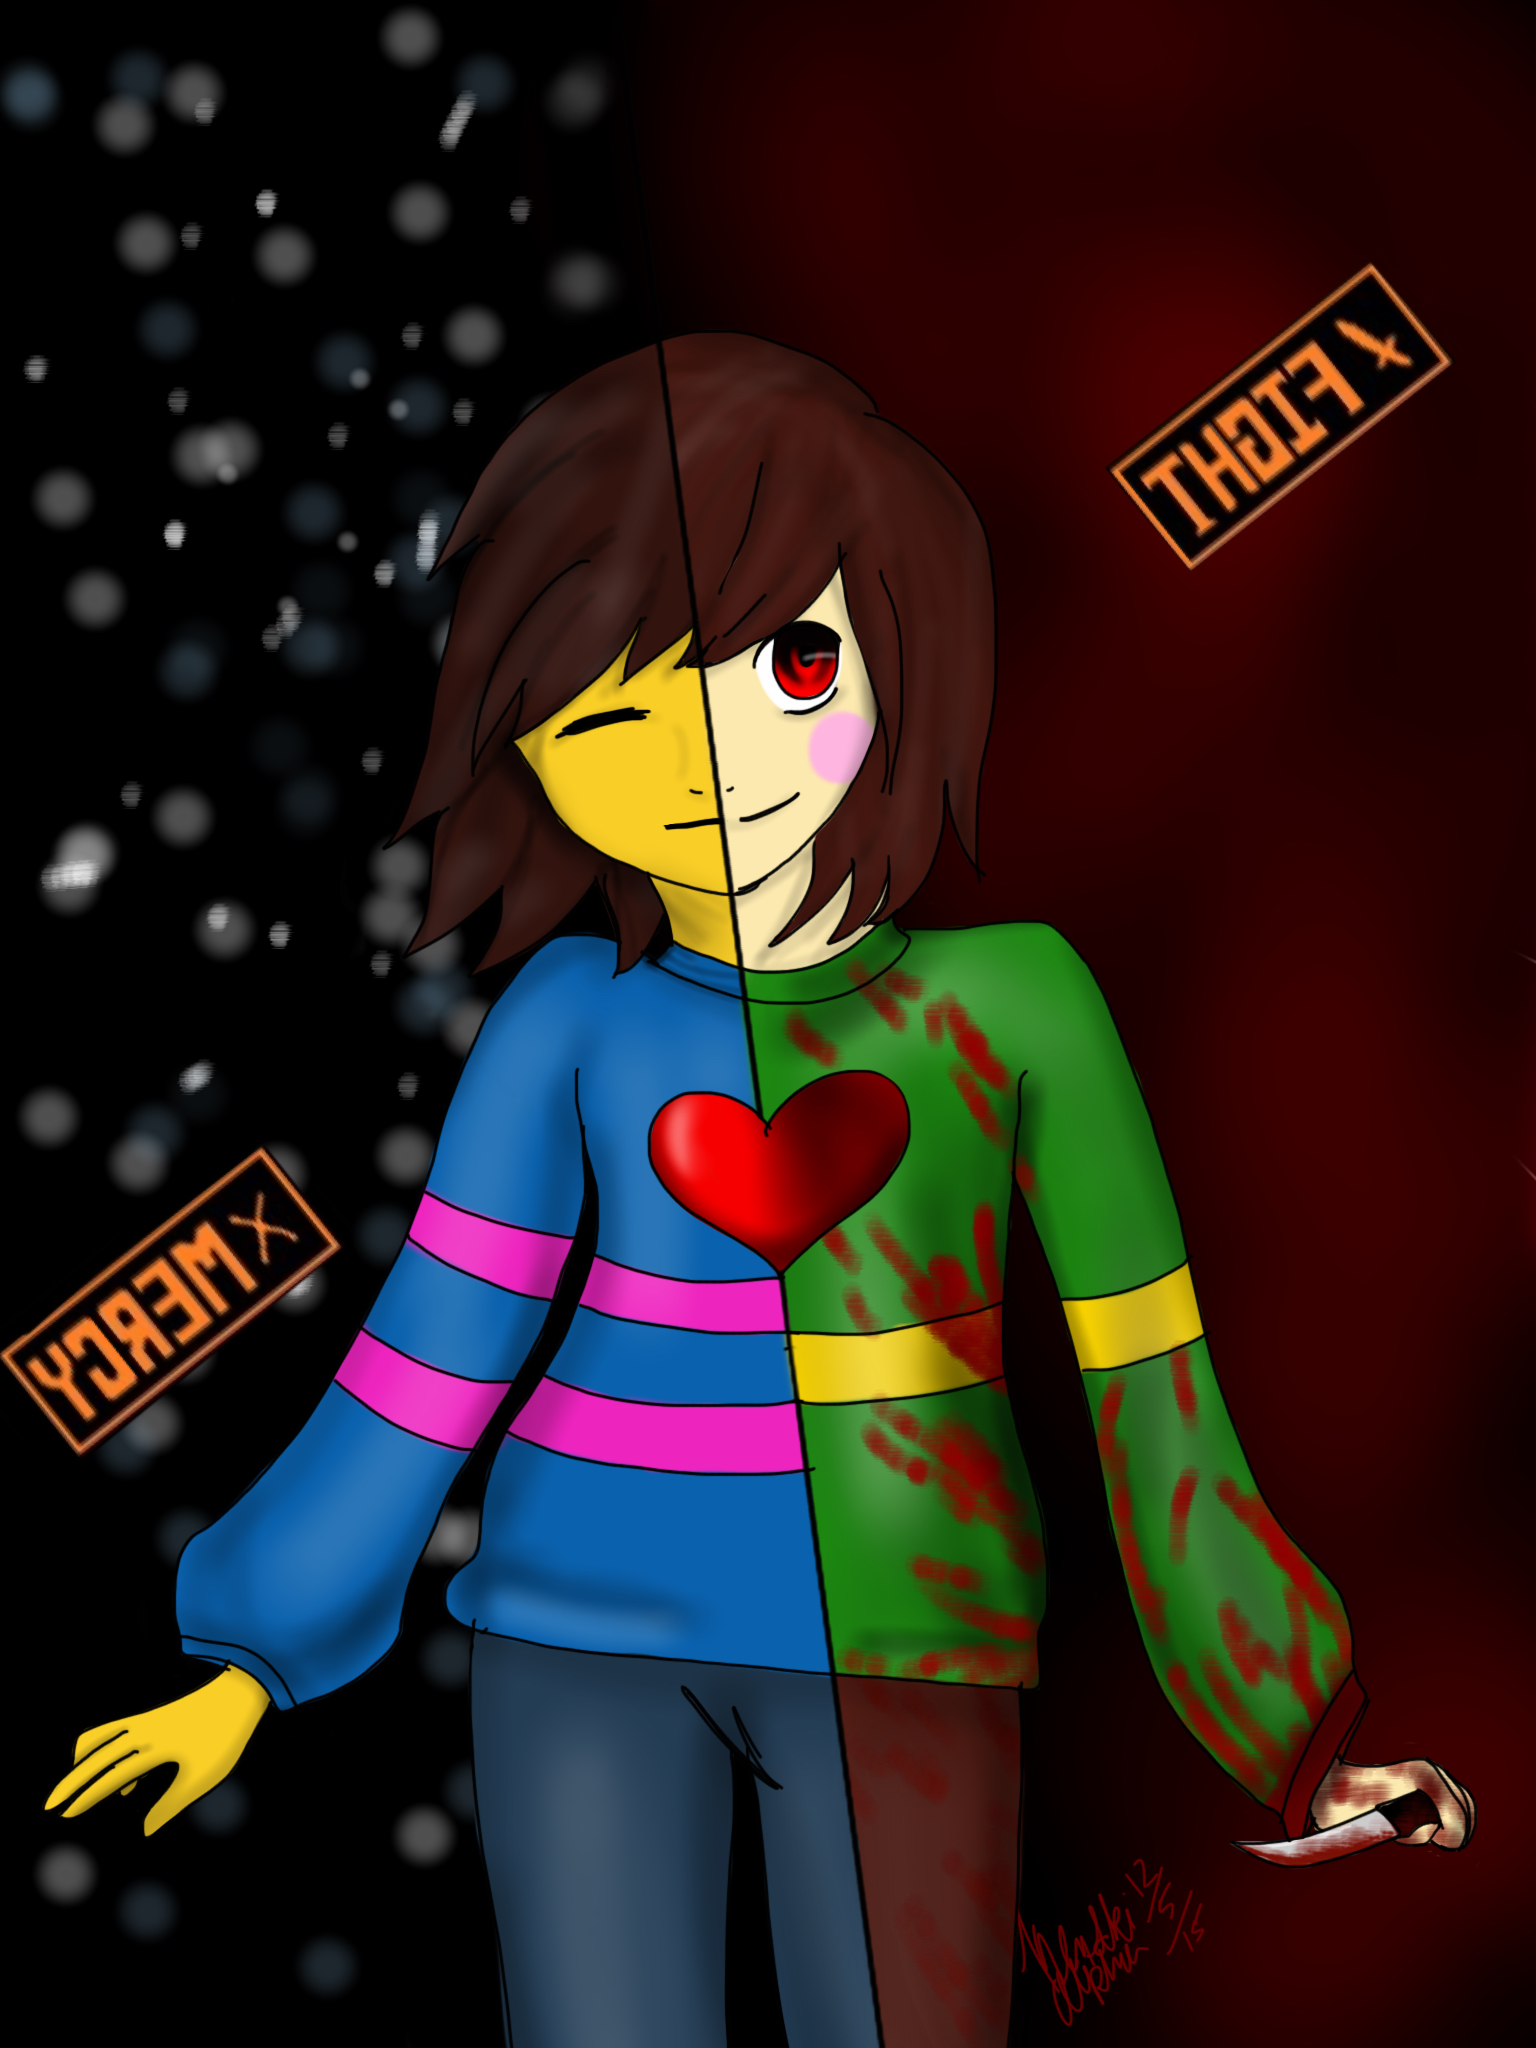 A Tale Of One House Chara X Frisk R34 Related Keywords Chara X Frisk R34